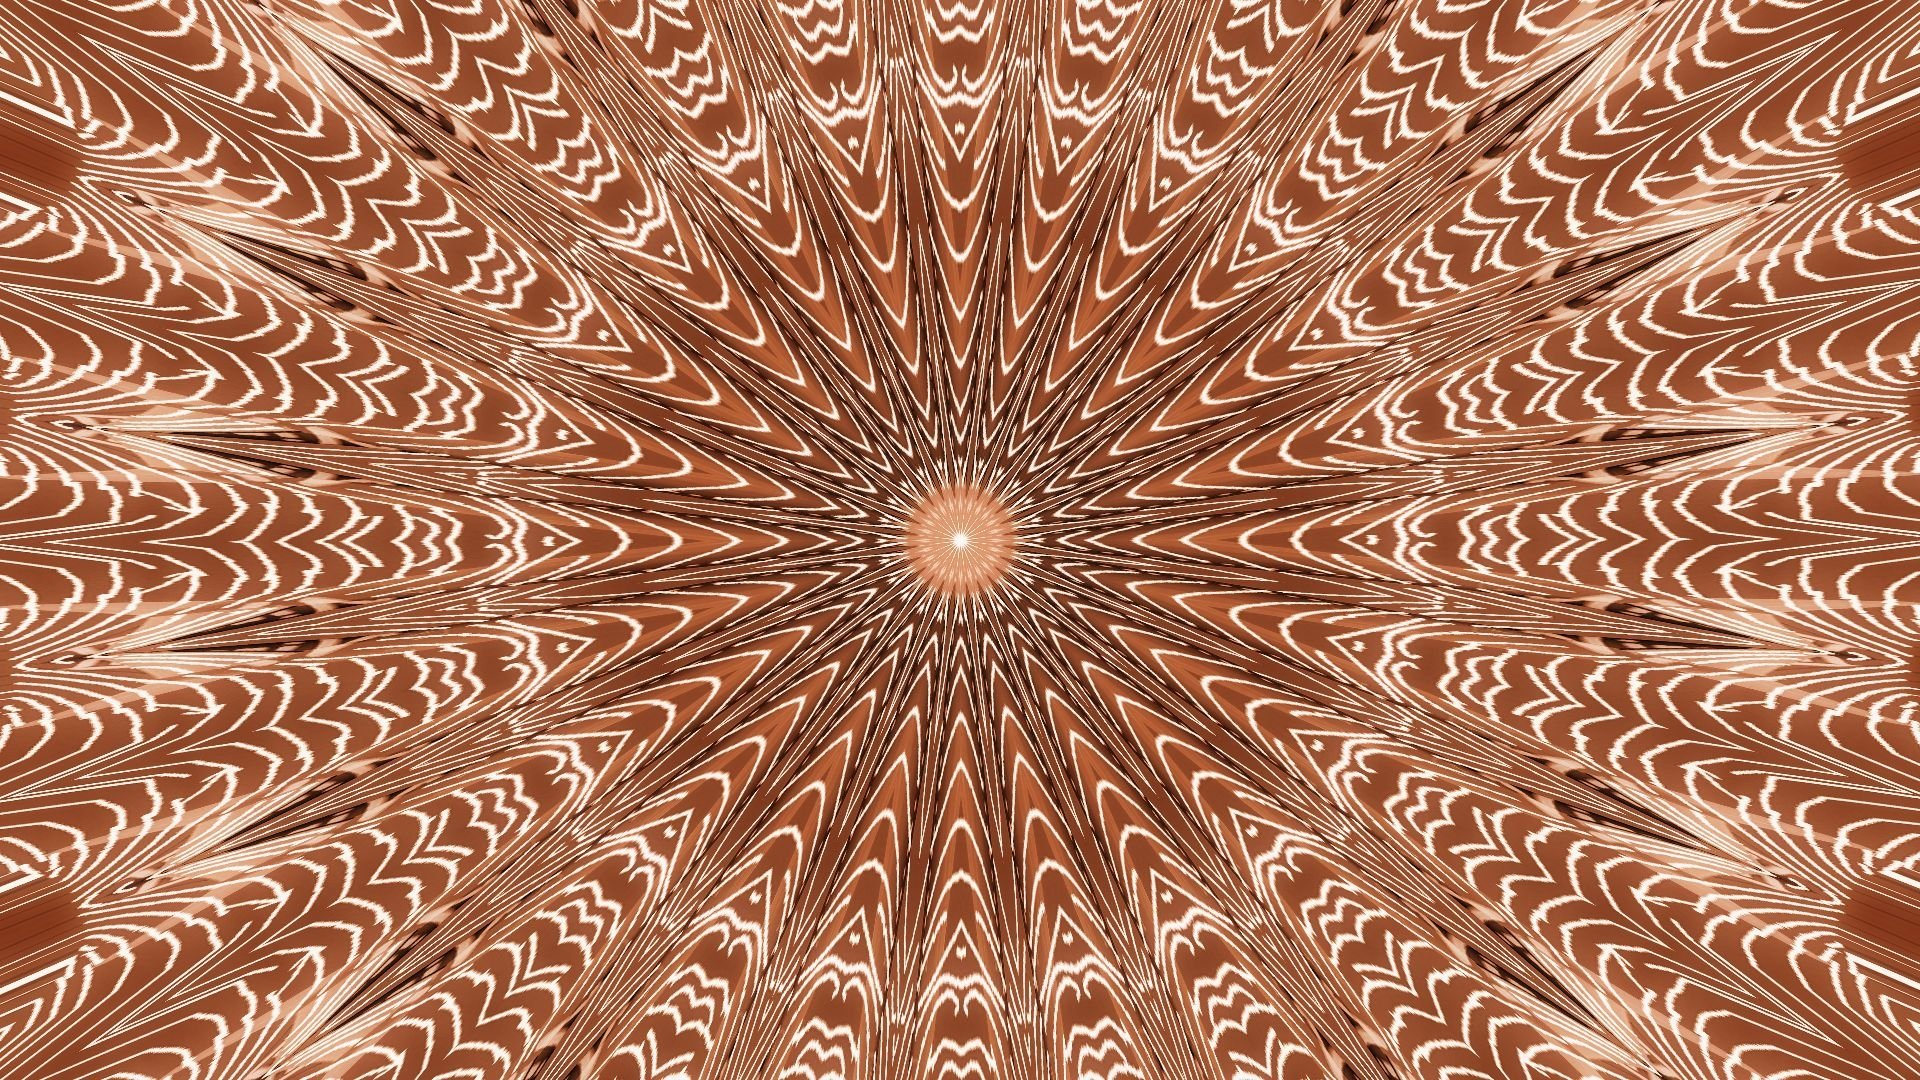 wallpaper 3840x2160 abstract brown - photo #4